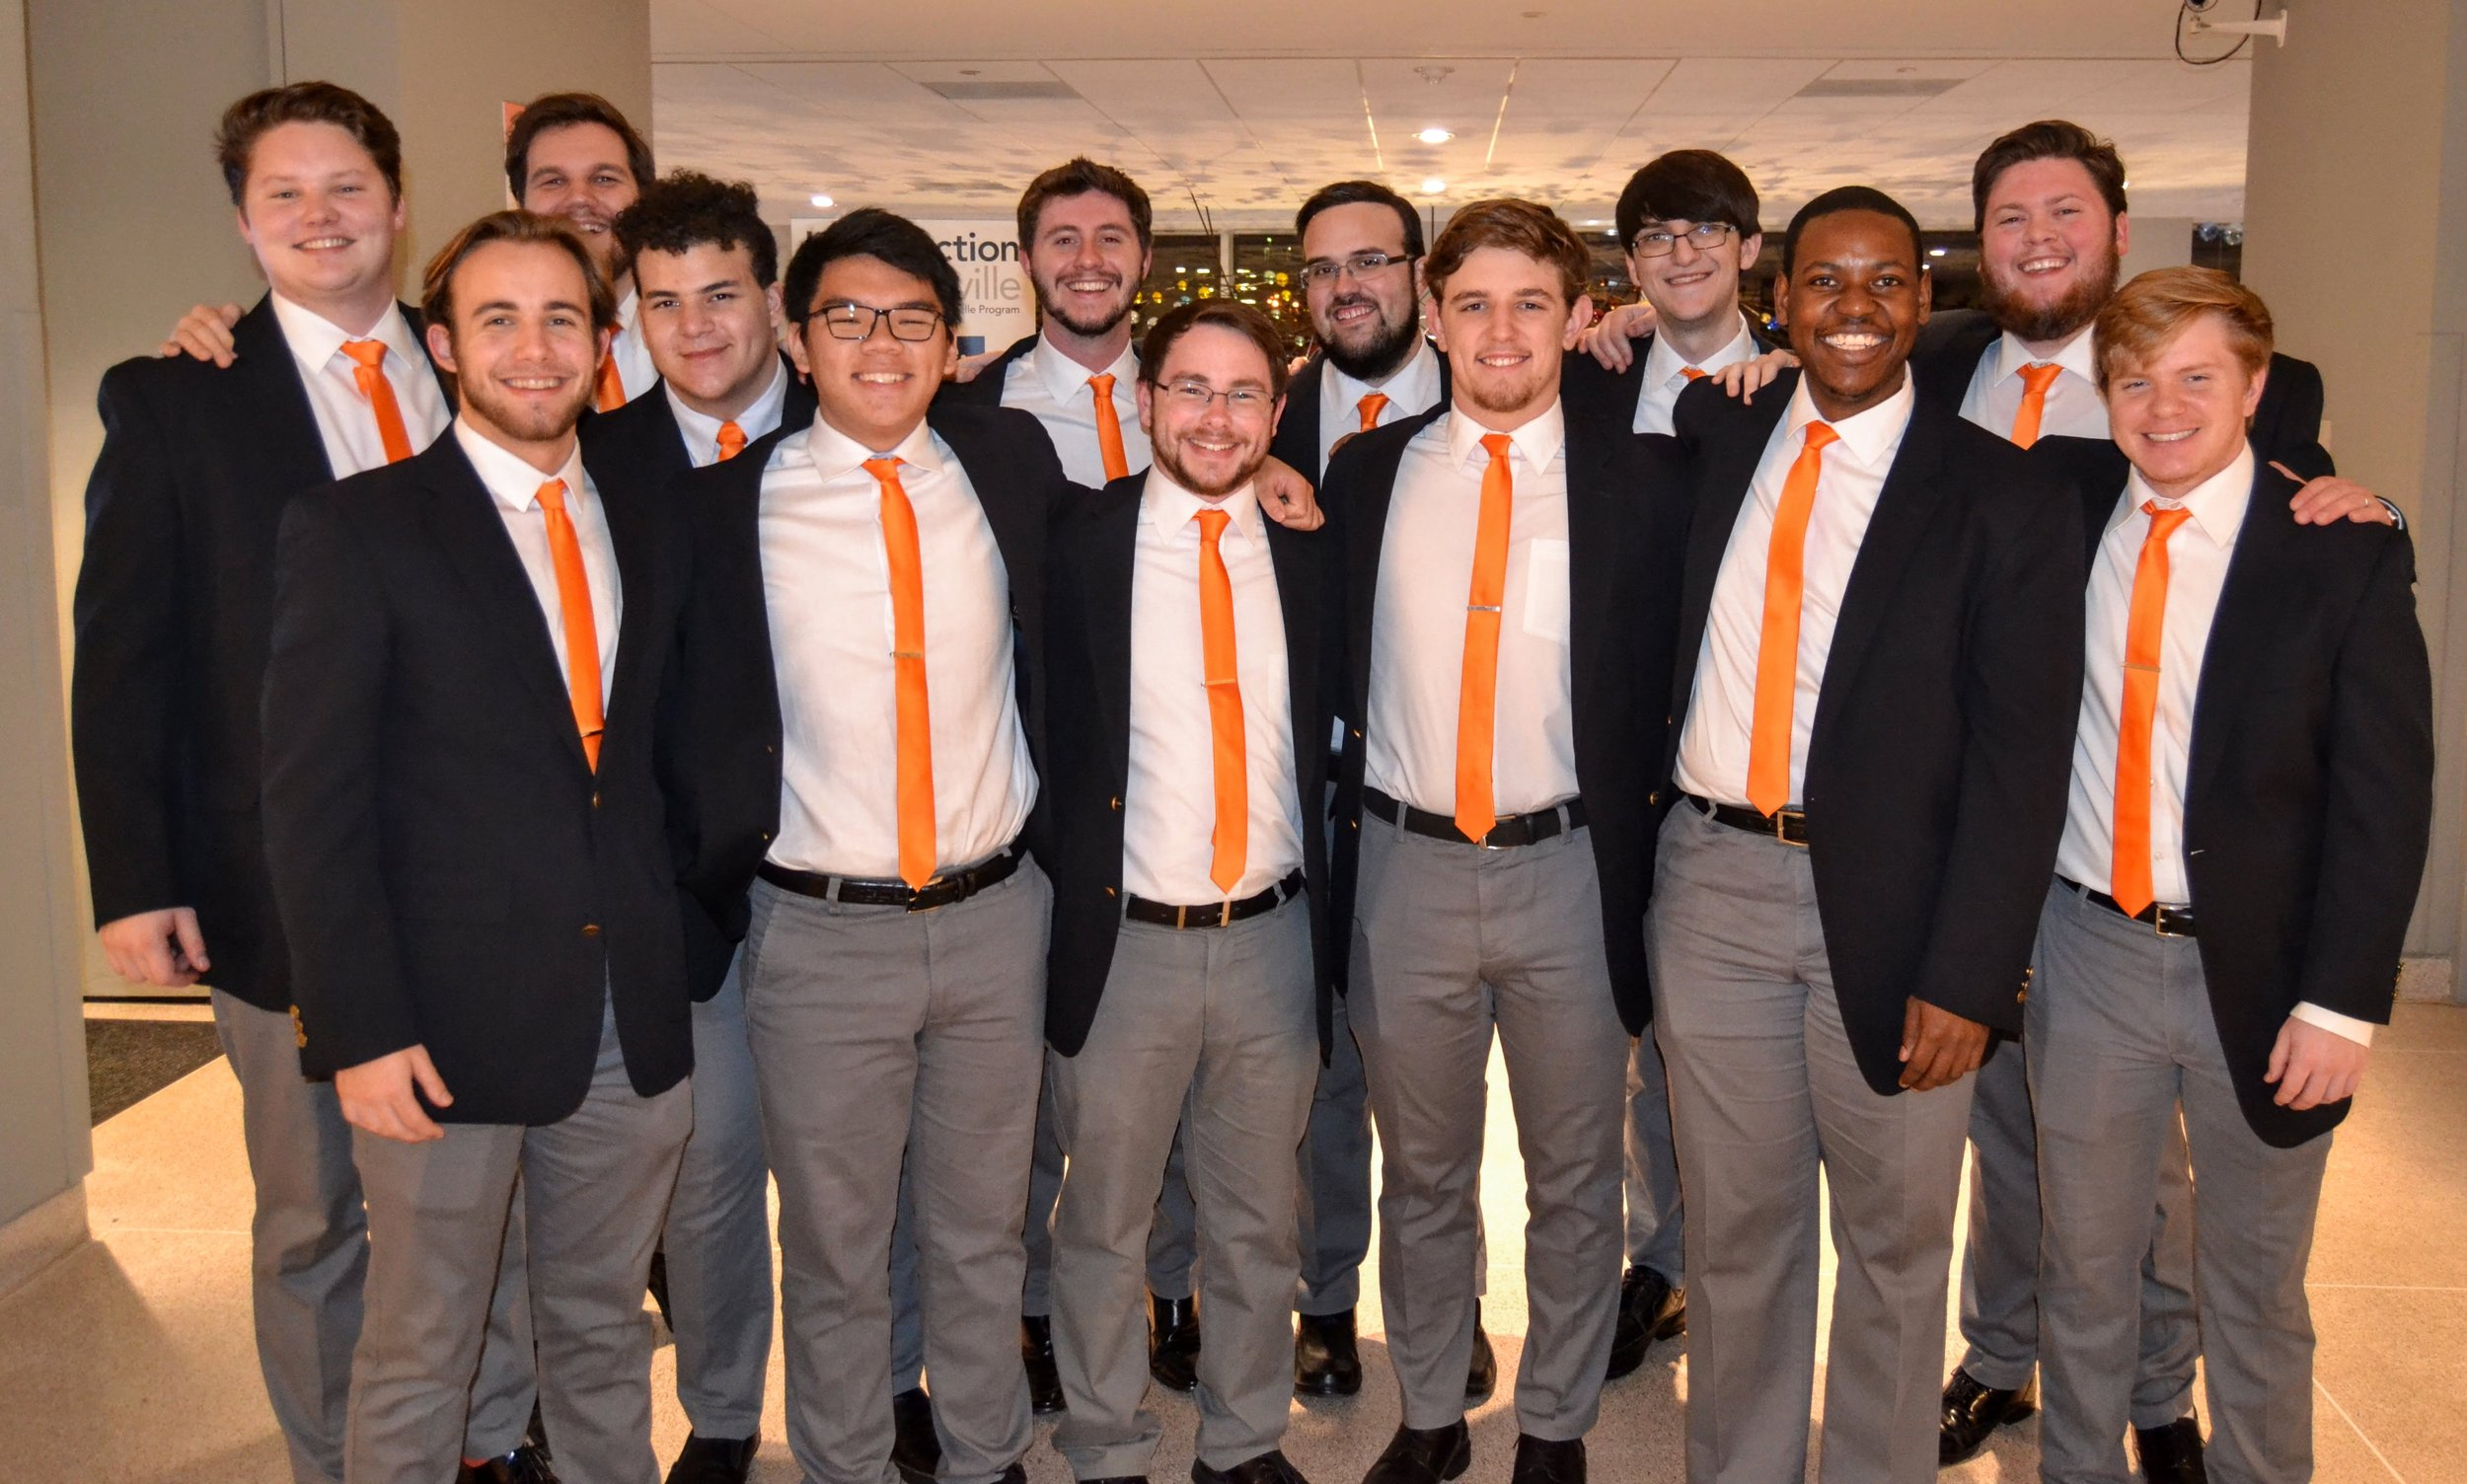 A Capella group VOLume from The University of Tennessee